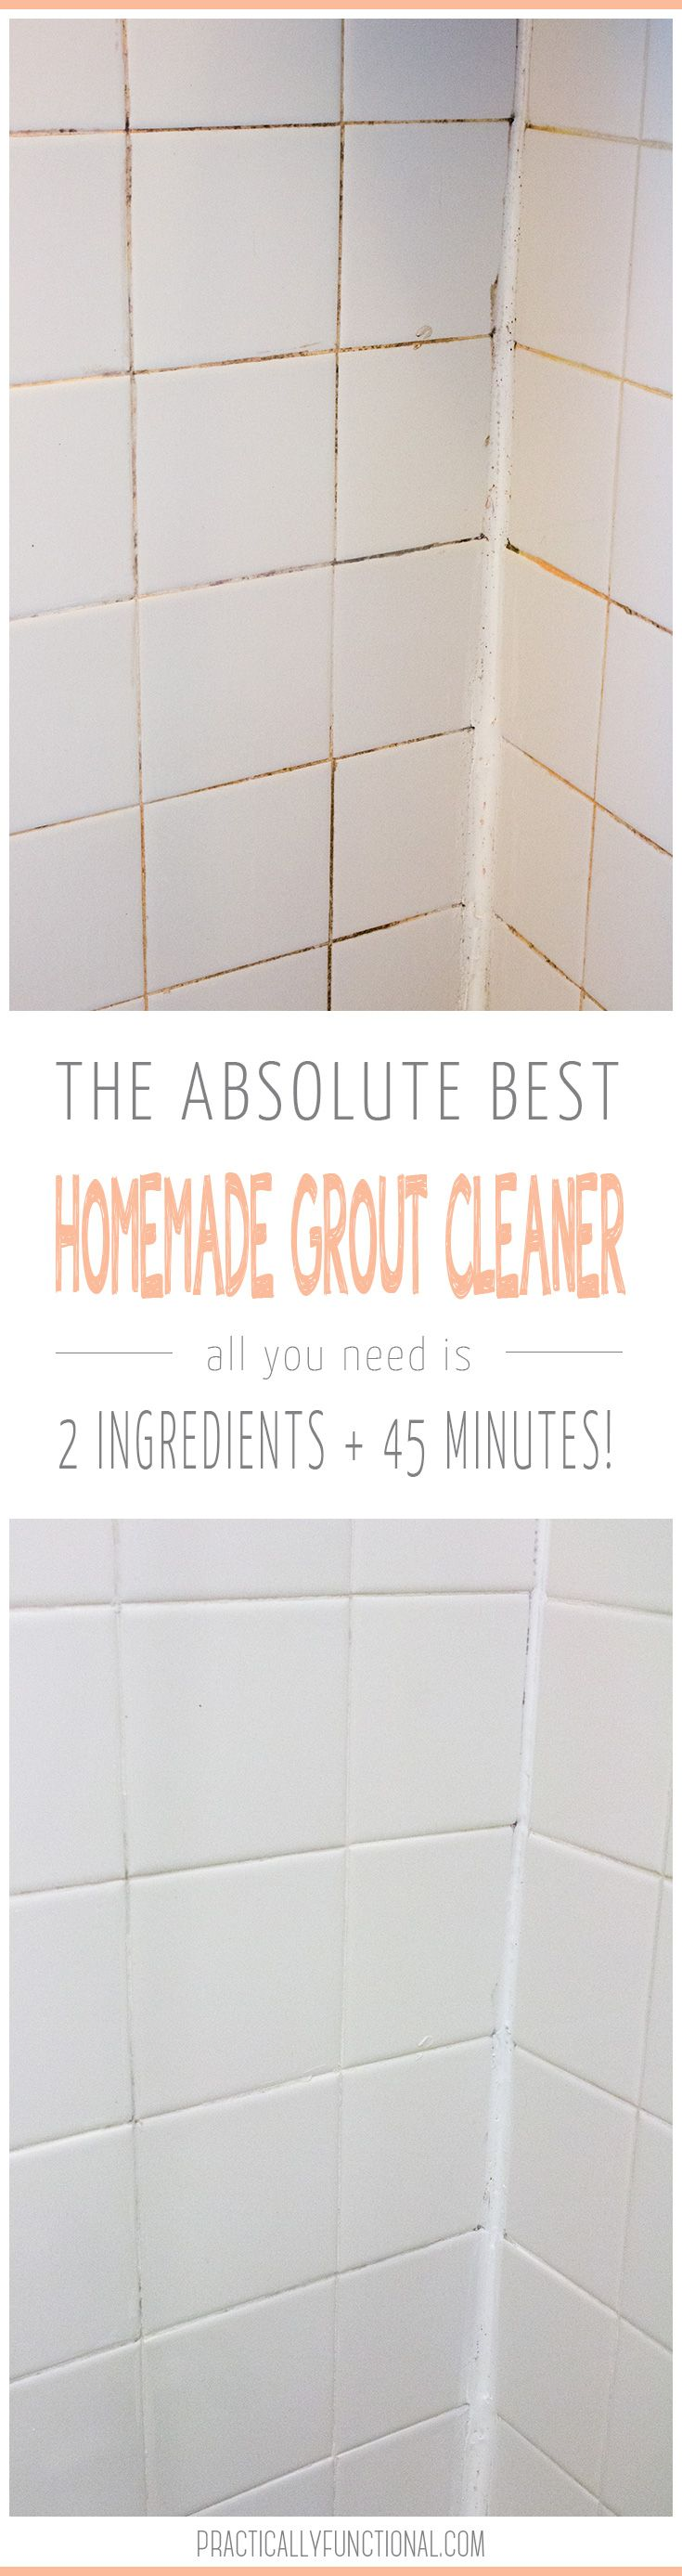 Tegelvoegen Schoonmaken How To Clean Grout With A Homemade Grout Cleaner Schoonmaken Wc